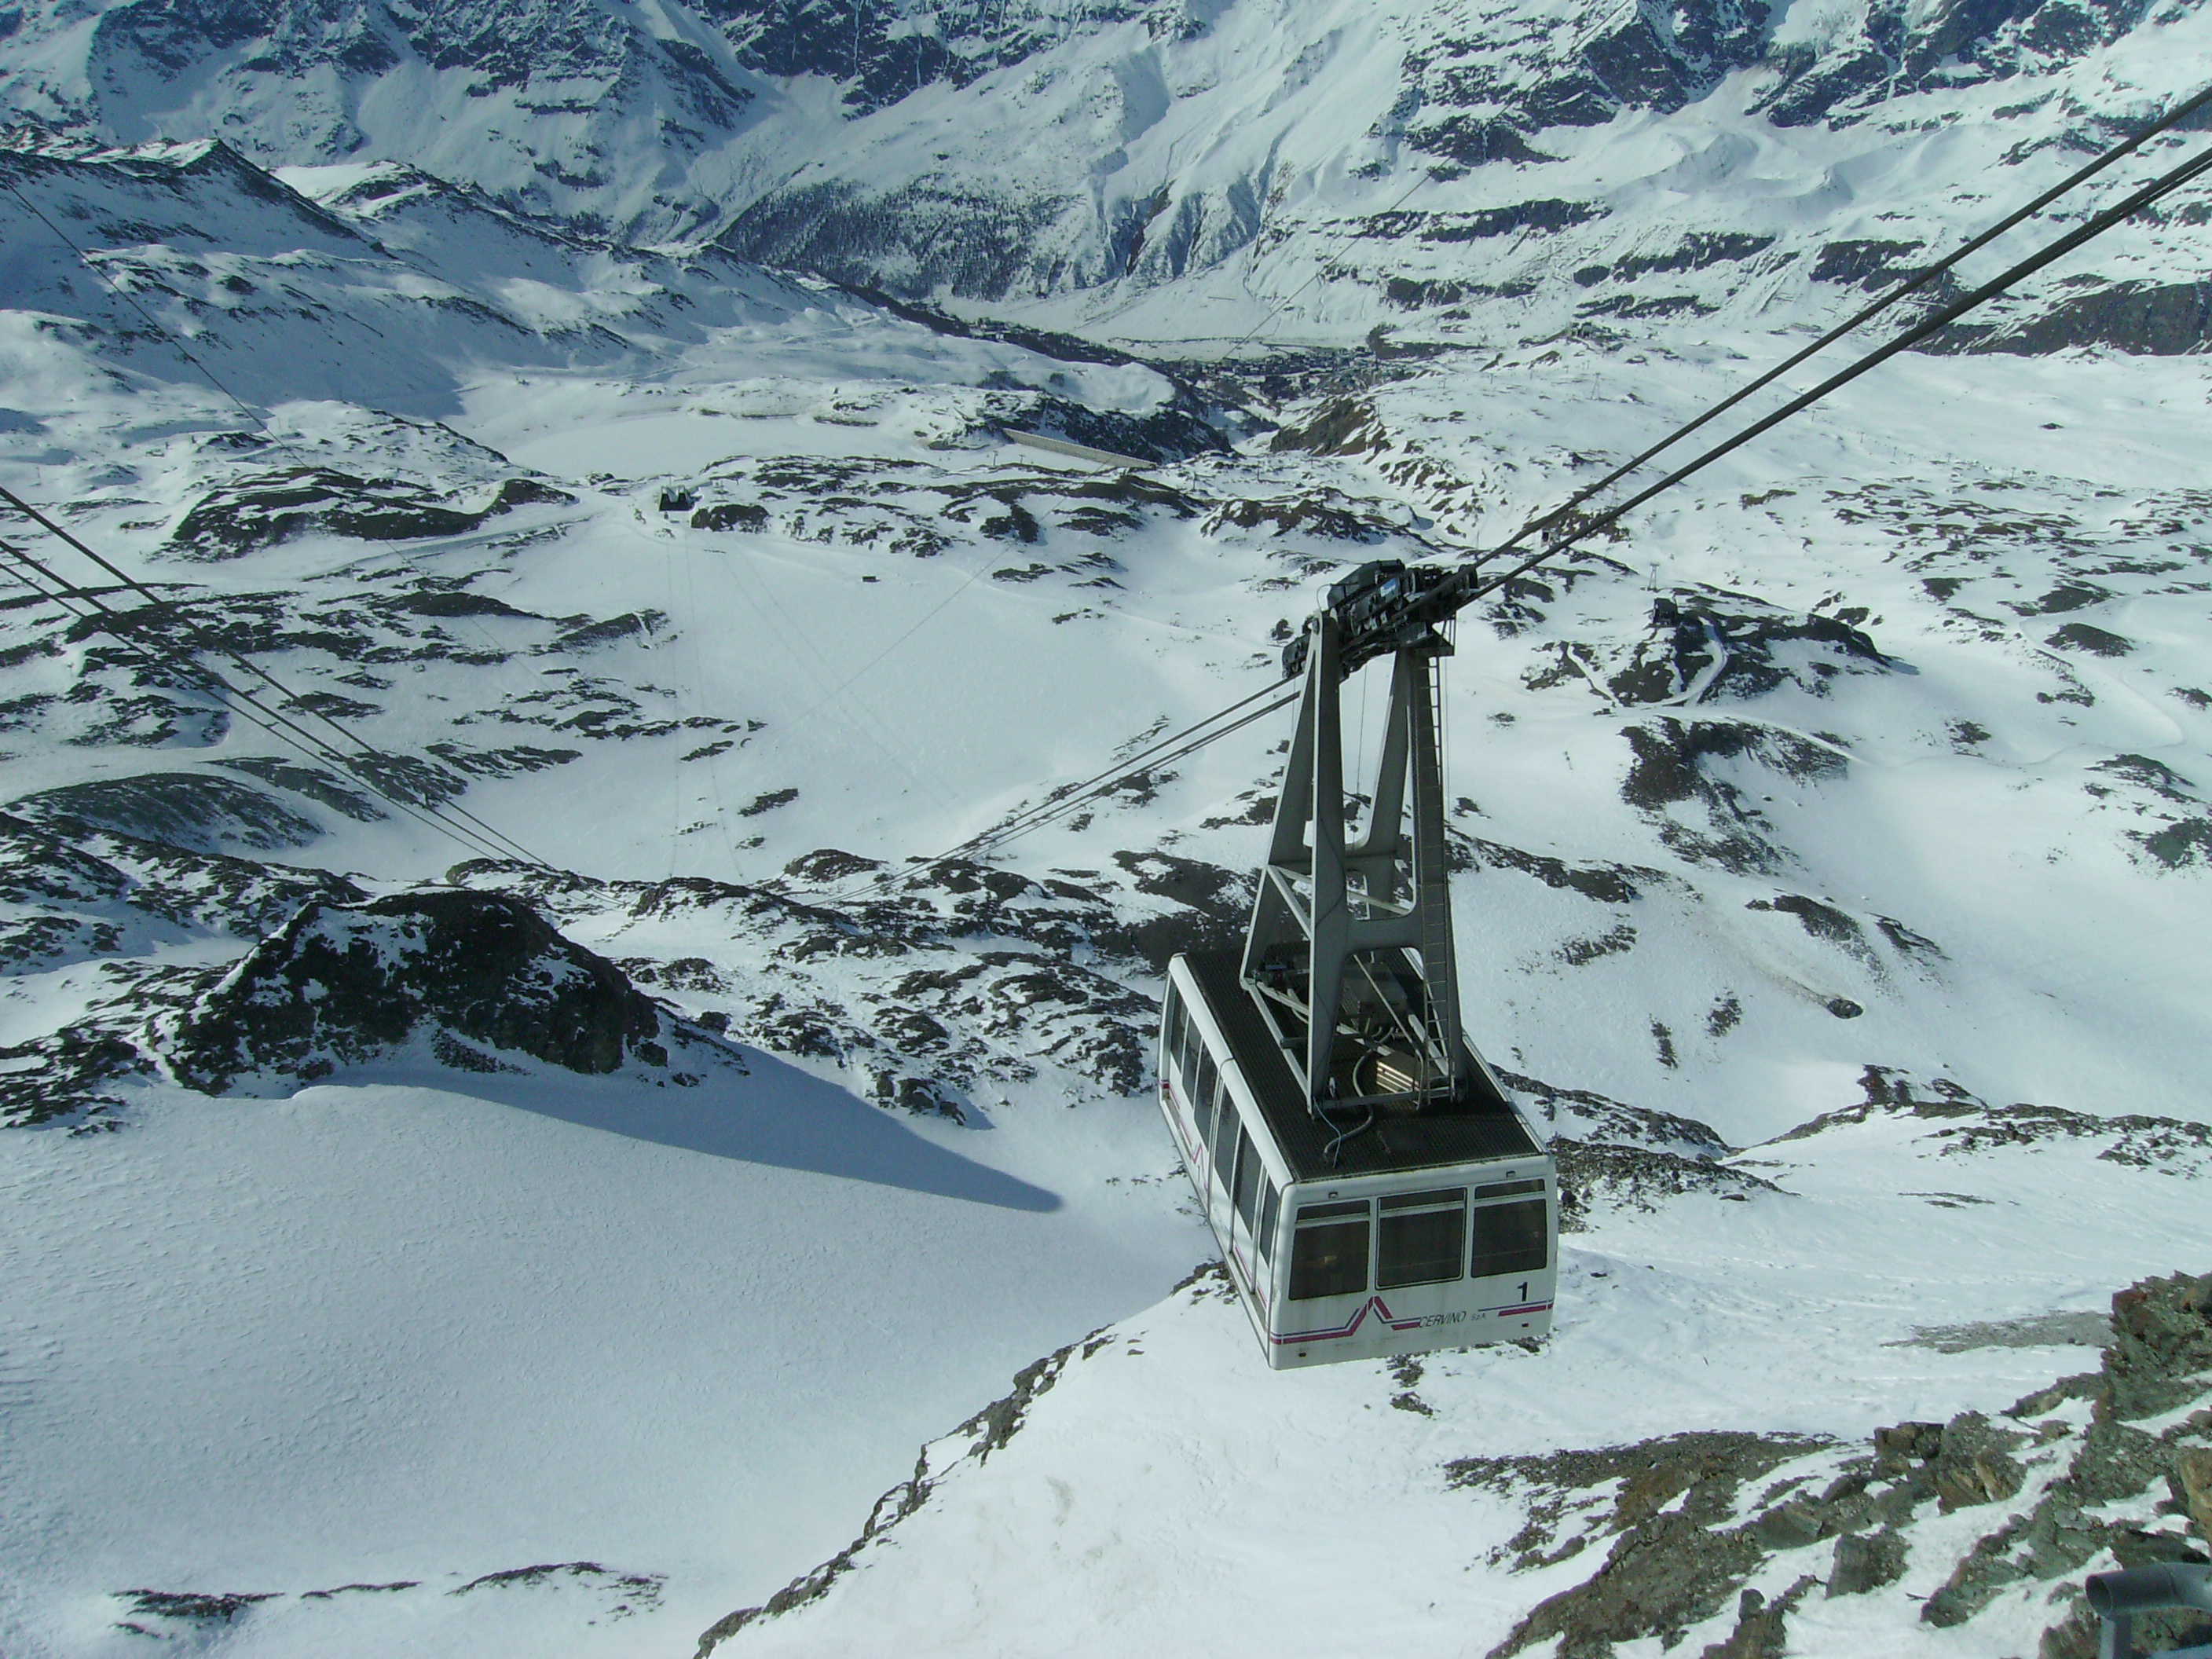 Plateau Rosa, a cableway to the glacier